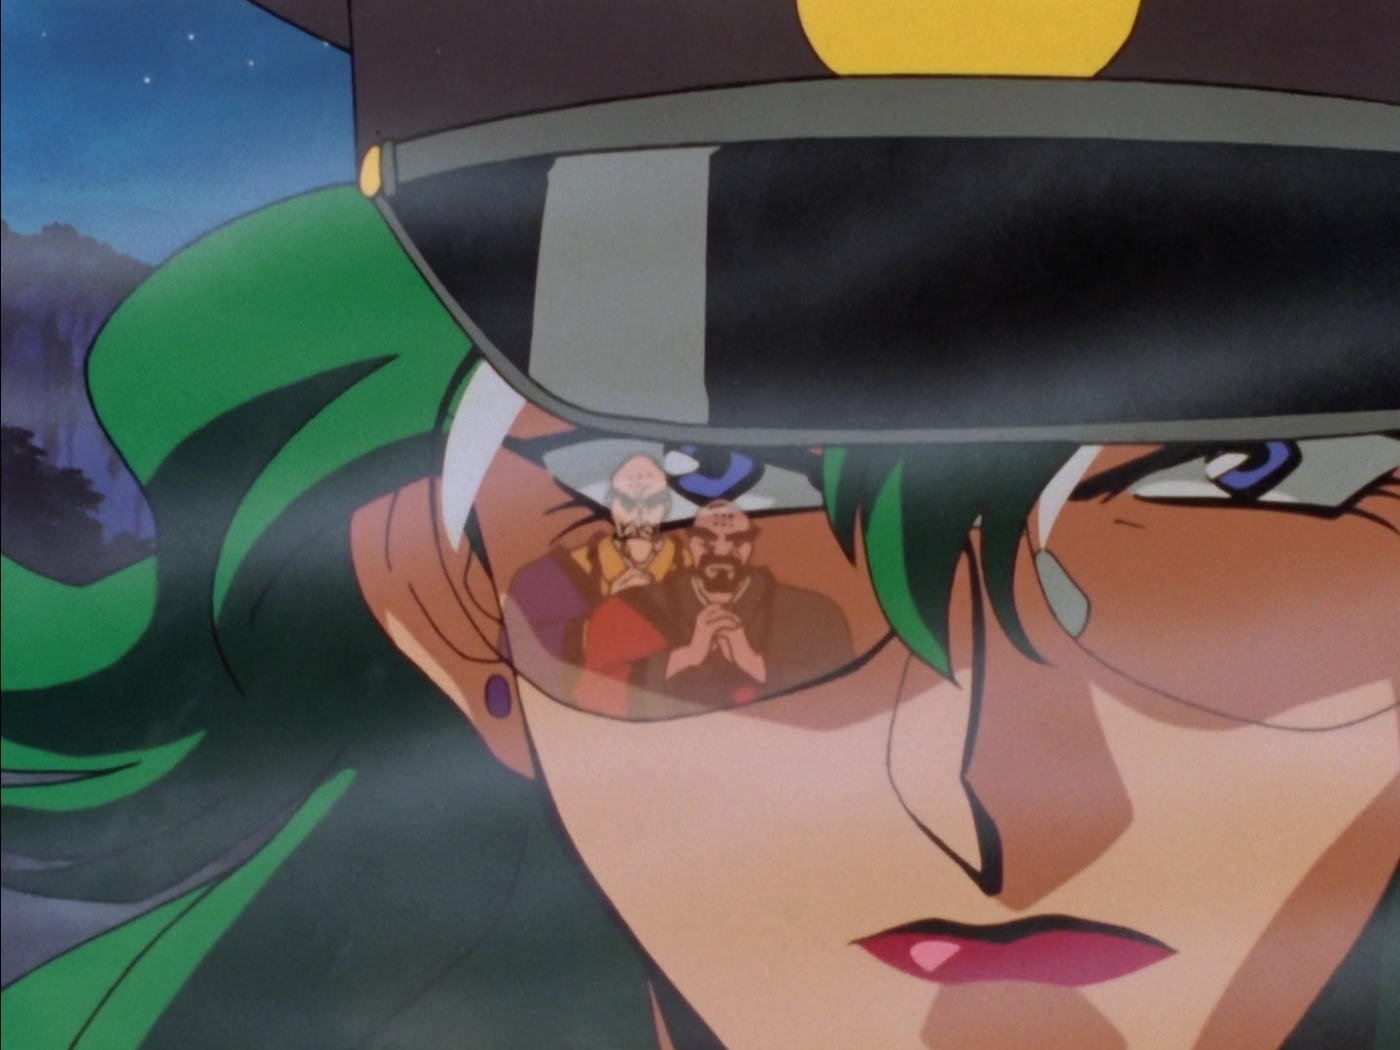 G Gundam, Mobile Fighter G Gundam, anime, mecha